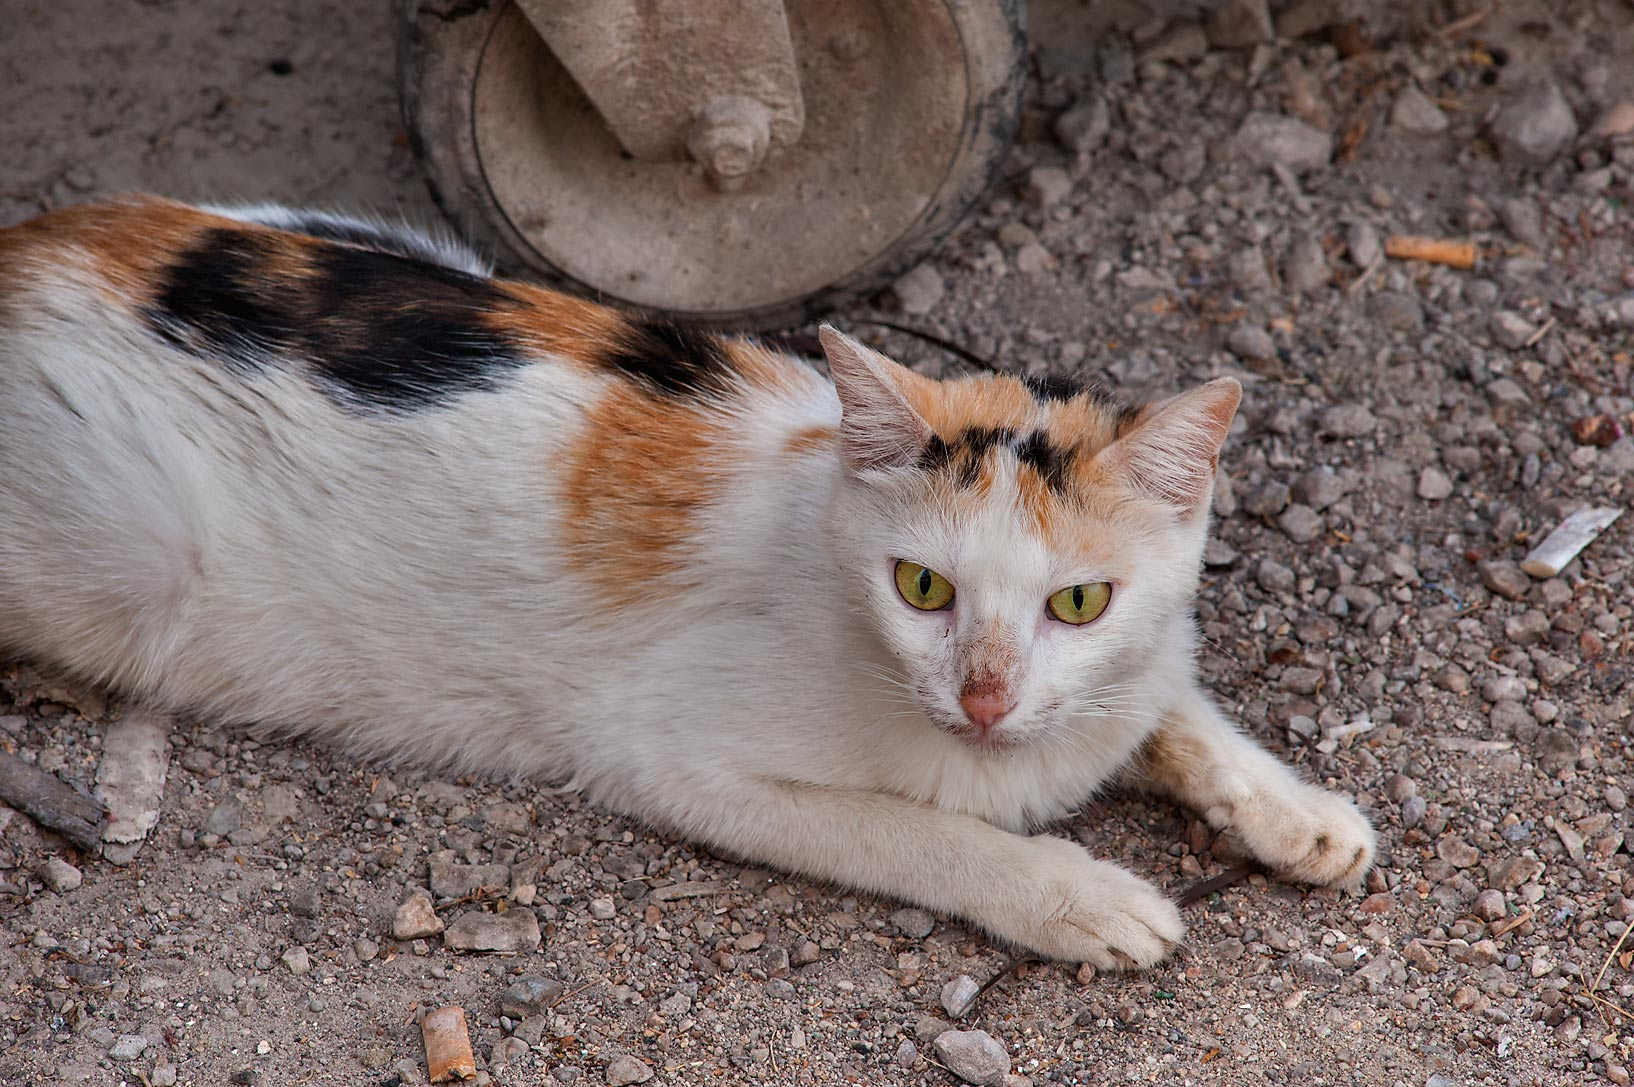 Calico cat guarding a dumpster near Umm Wishad St. in Musheirib area. Doha, Qatar